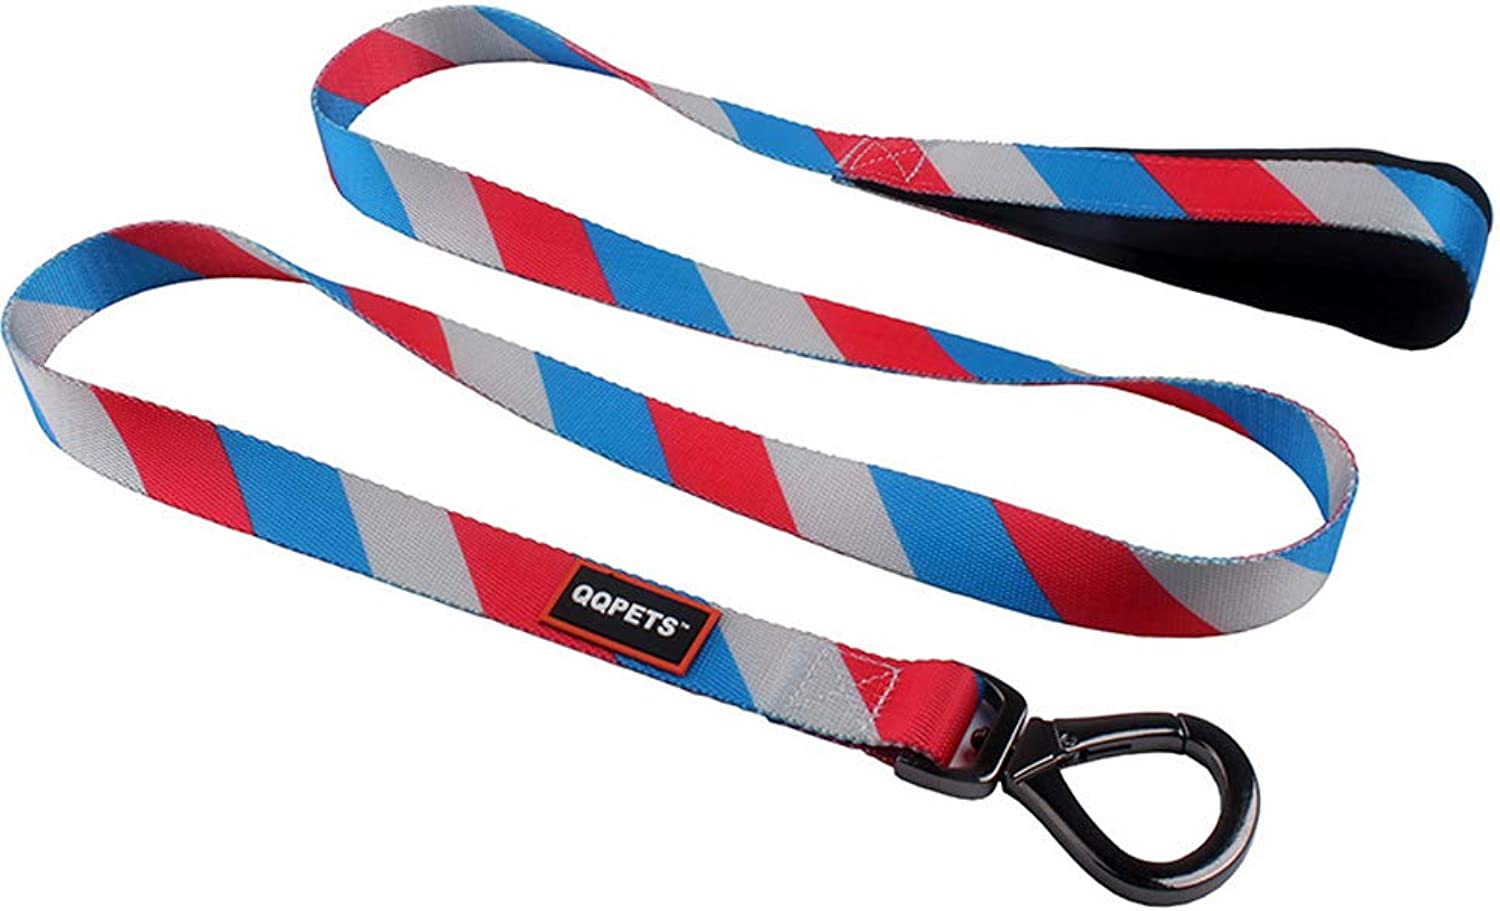 QQPETS Strong Dog Leash (Length 5 ft Width 4 5inch) with Padded Handle Nylon Pet Leash for Small Medium Puppy Breed Red bluee White Stripe